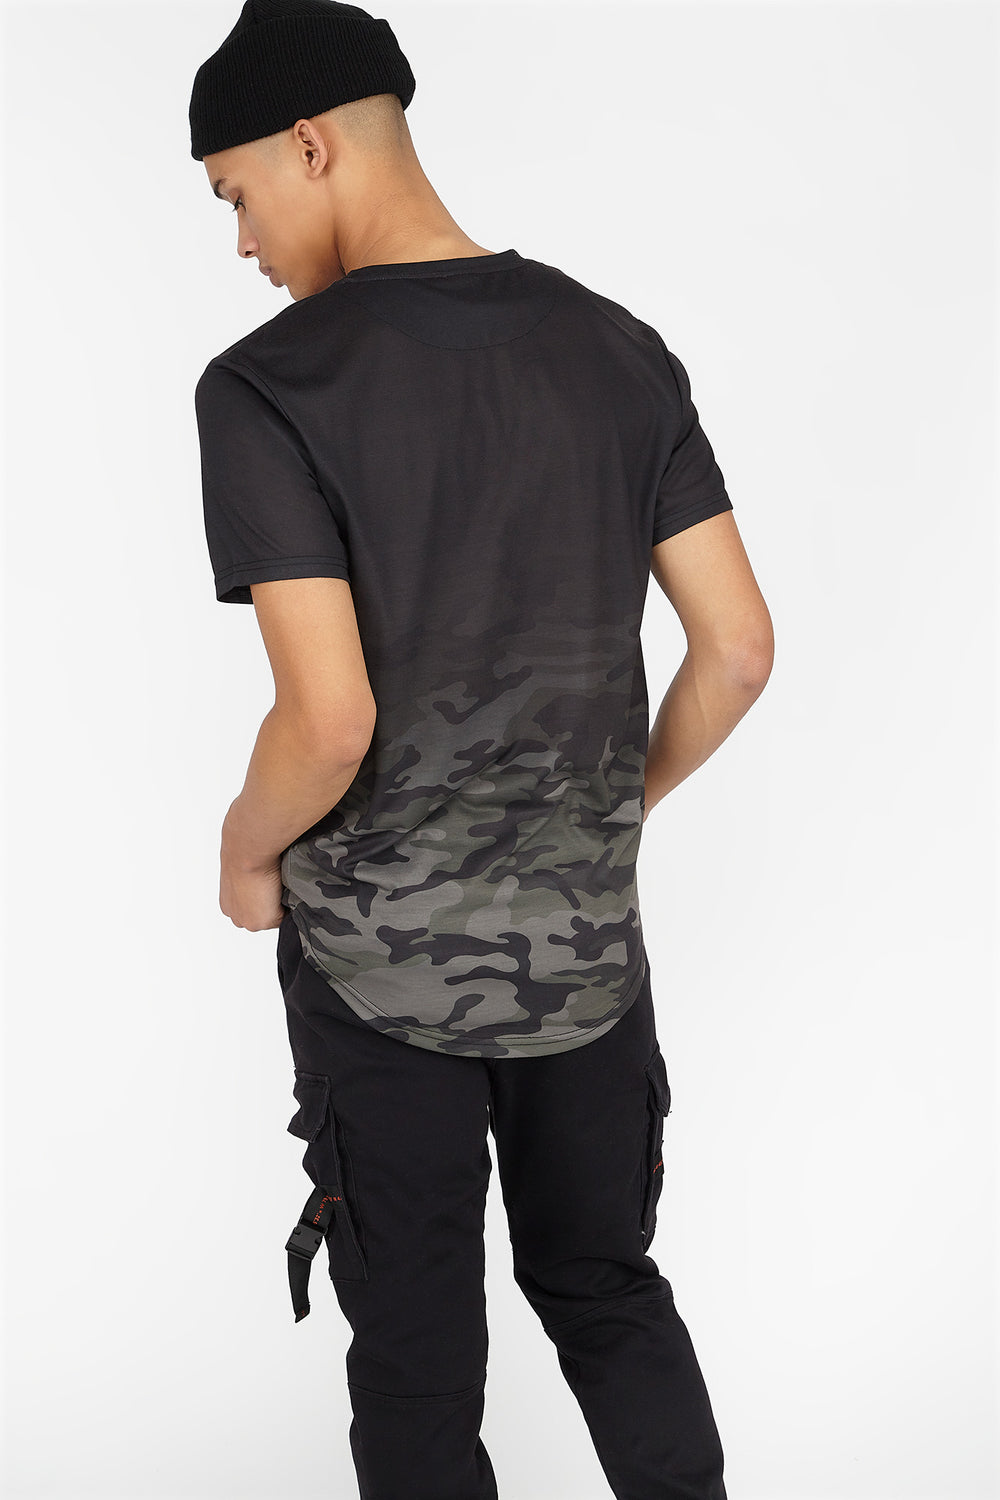 Ombre Camo Printed Graphic Longline T-Shirt Black